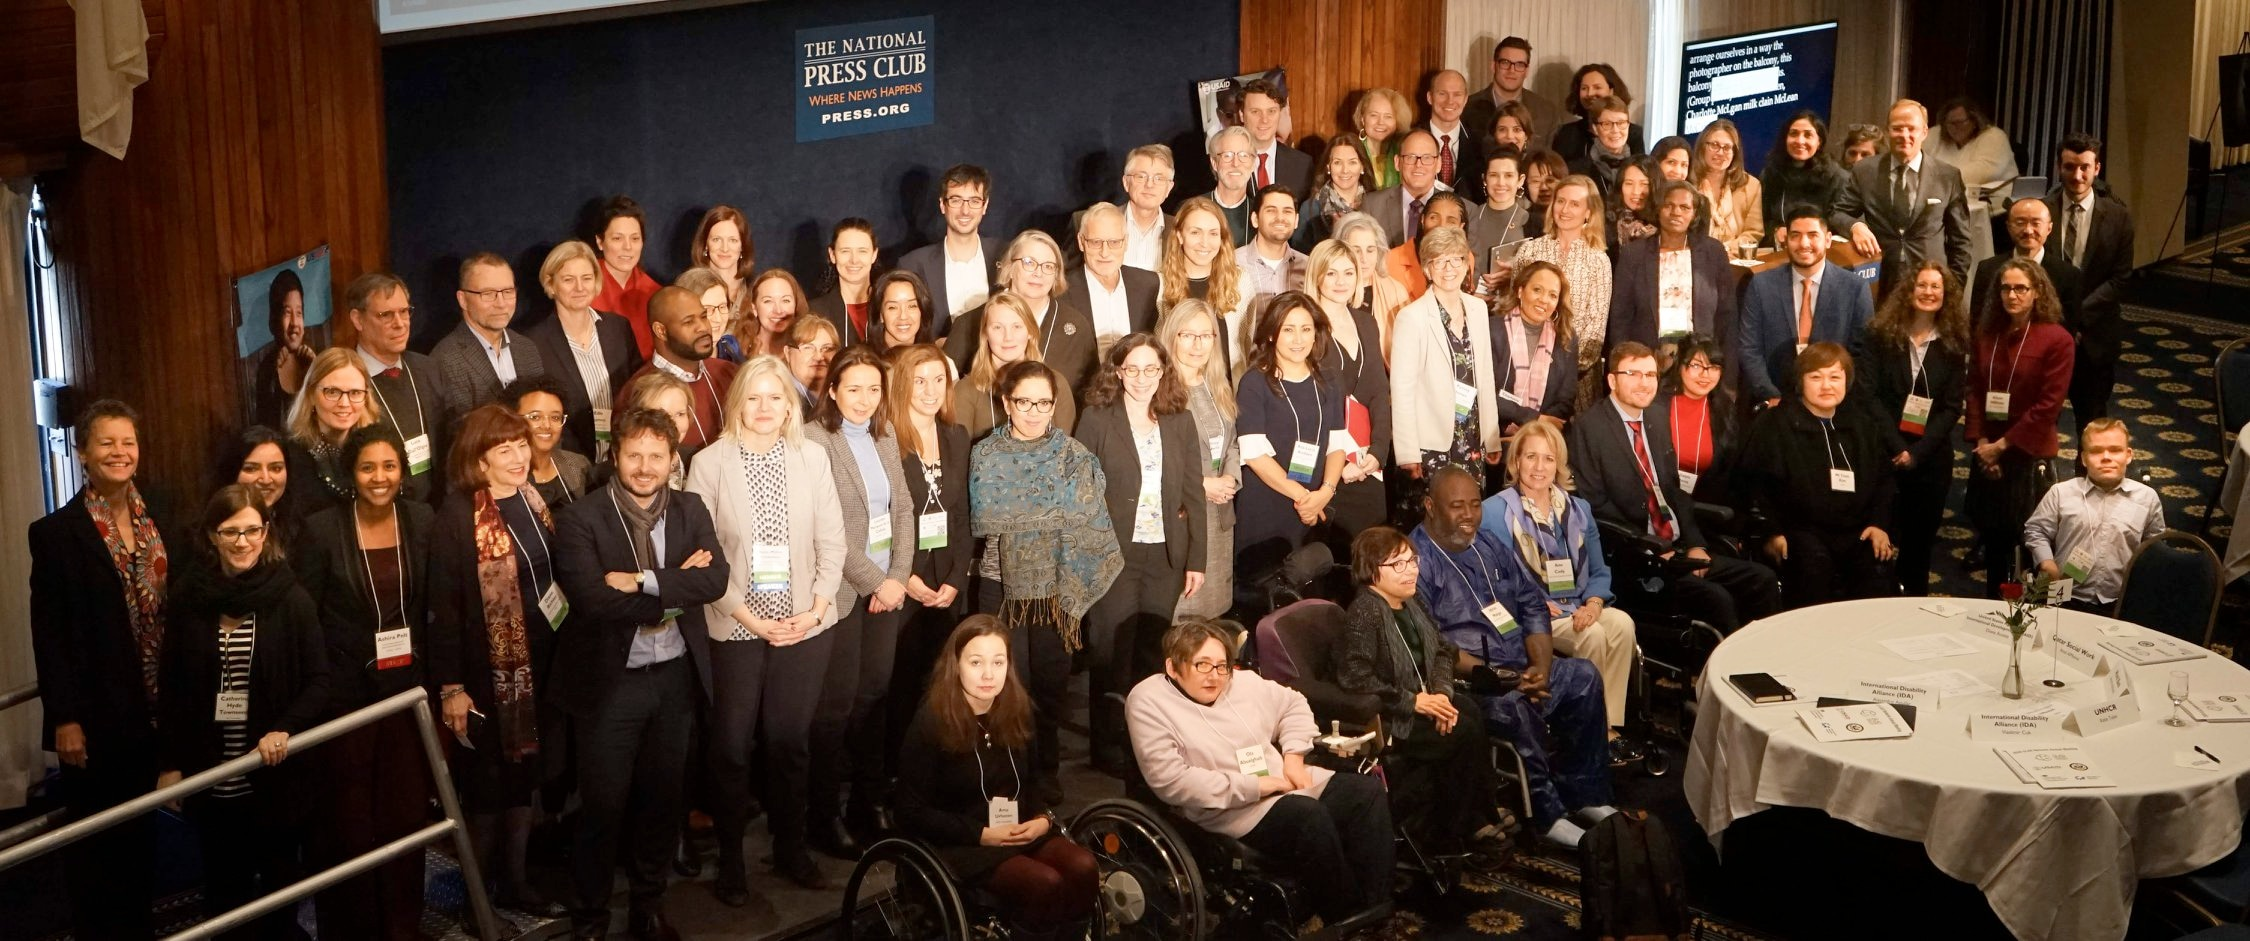 Group of leading disability rights advocates in a group photo at the national press club